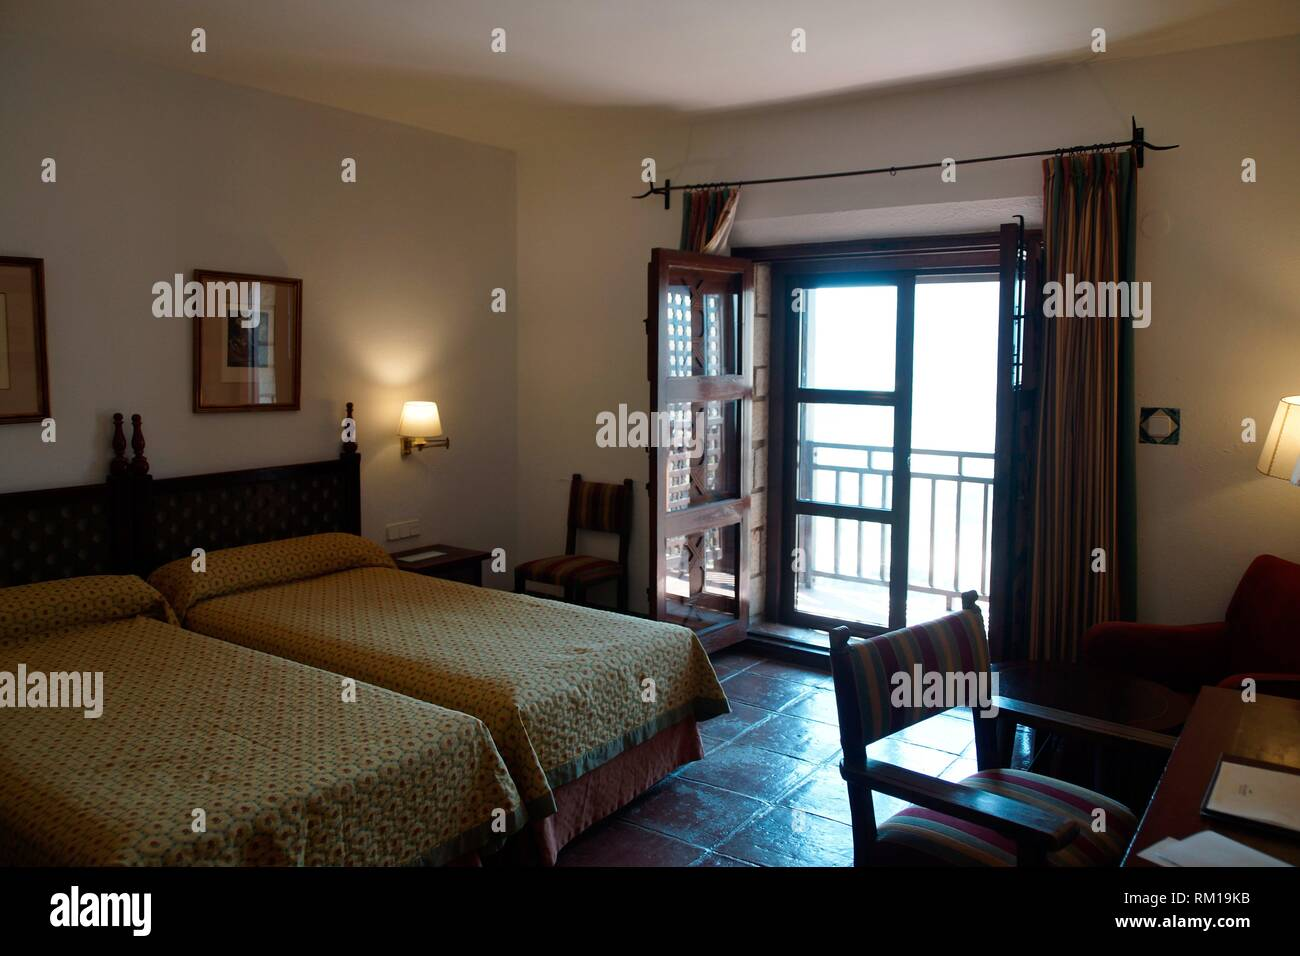 Jaén (Spain). Interior of a hotel room in the city of Jaén. - Stock Image